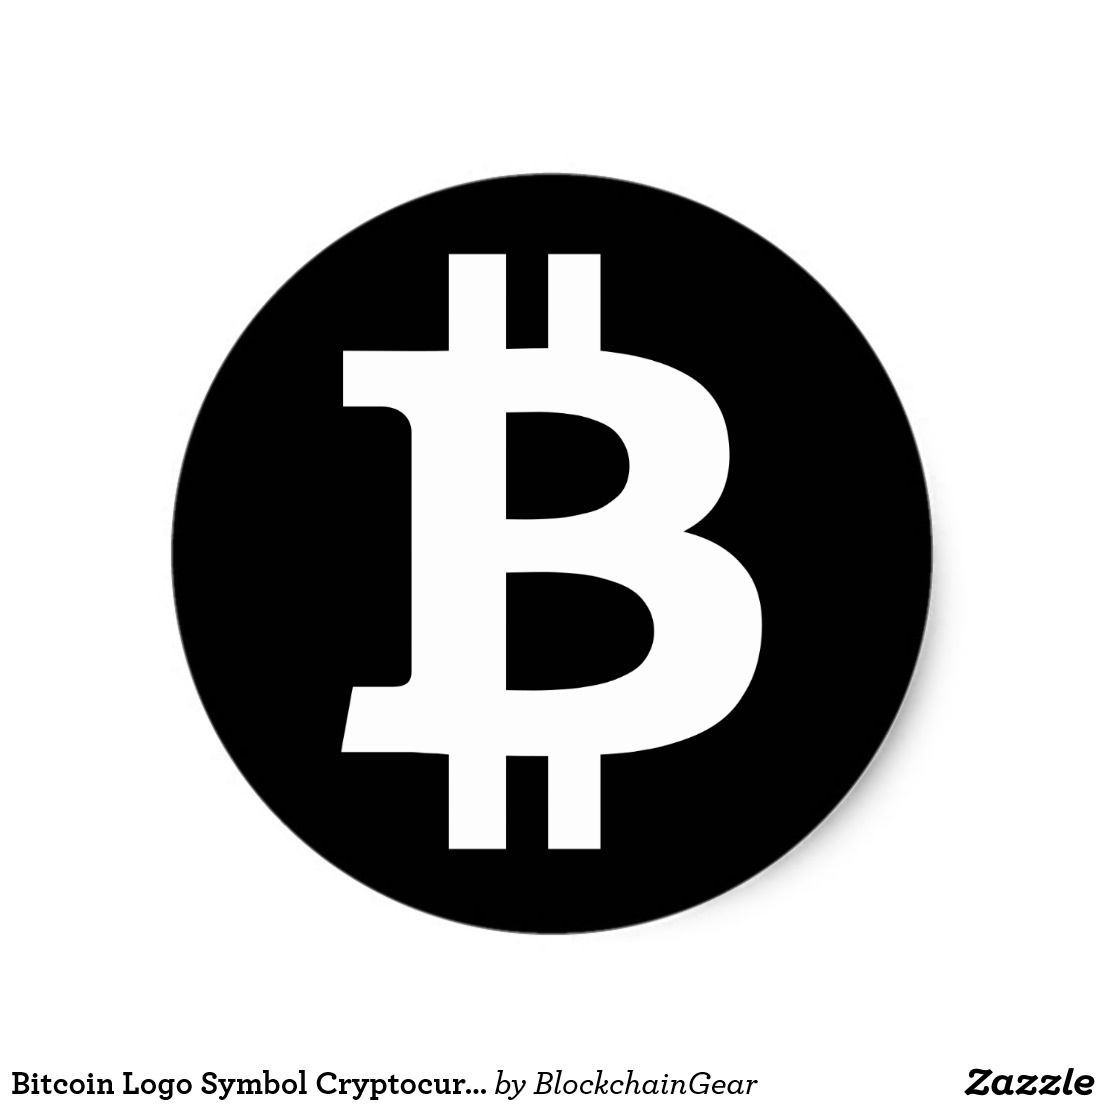 Bitcoin Logo - Bitcoin Logo Symbol Cryptocurrency Crypto Sticker | Blockchain Gear ...